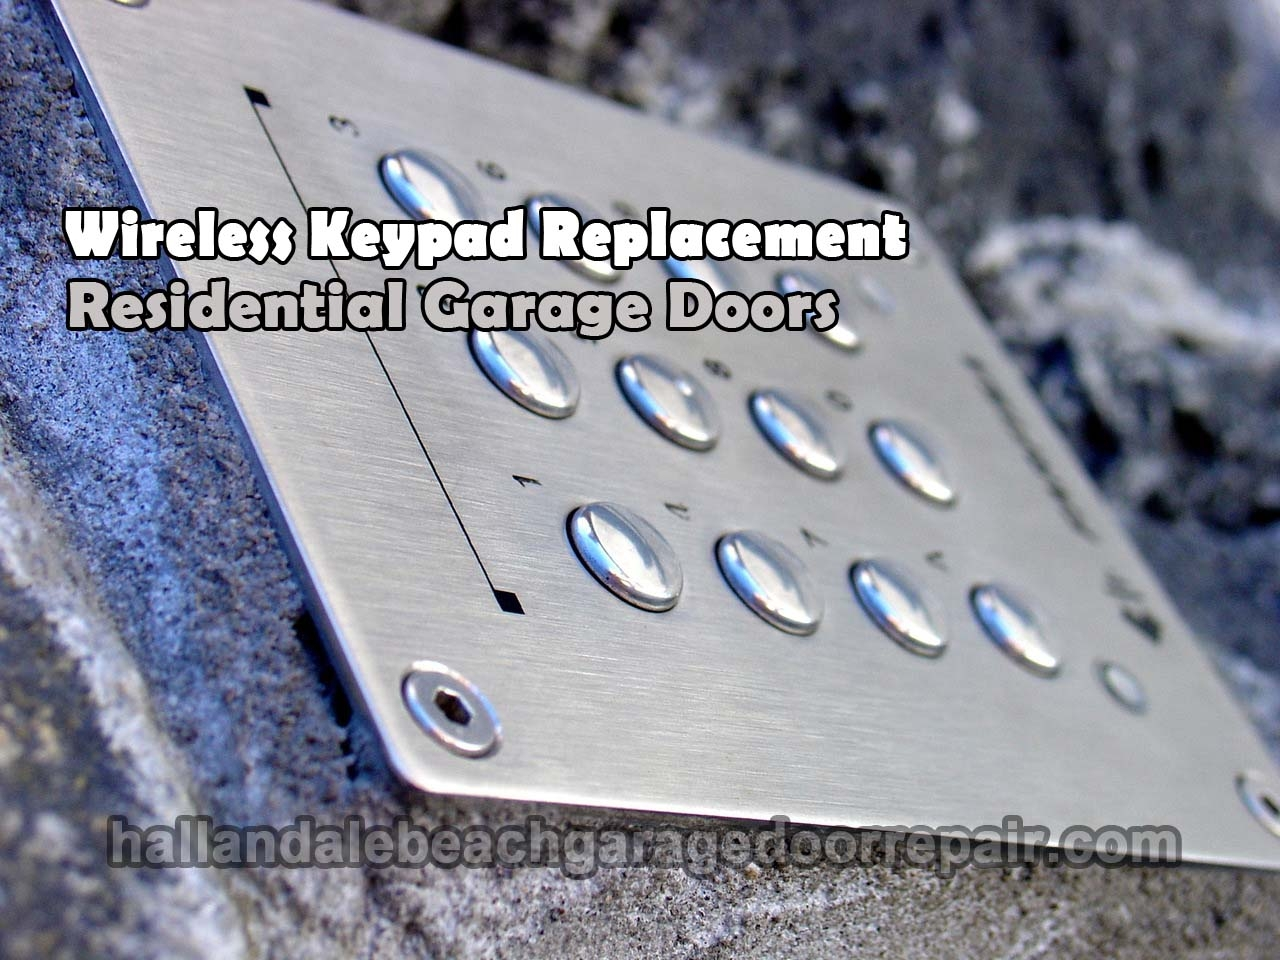 Maloney Garage Door (@hallandalebeachgaragedoorrepair) Cover Image